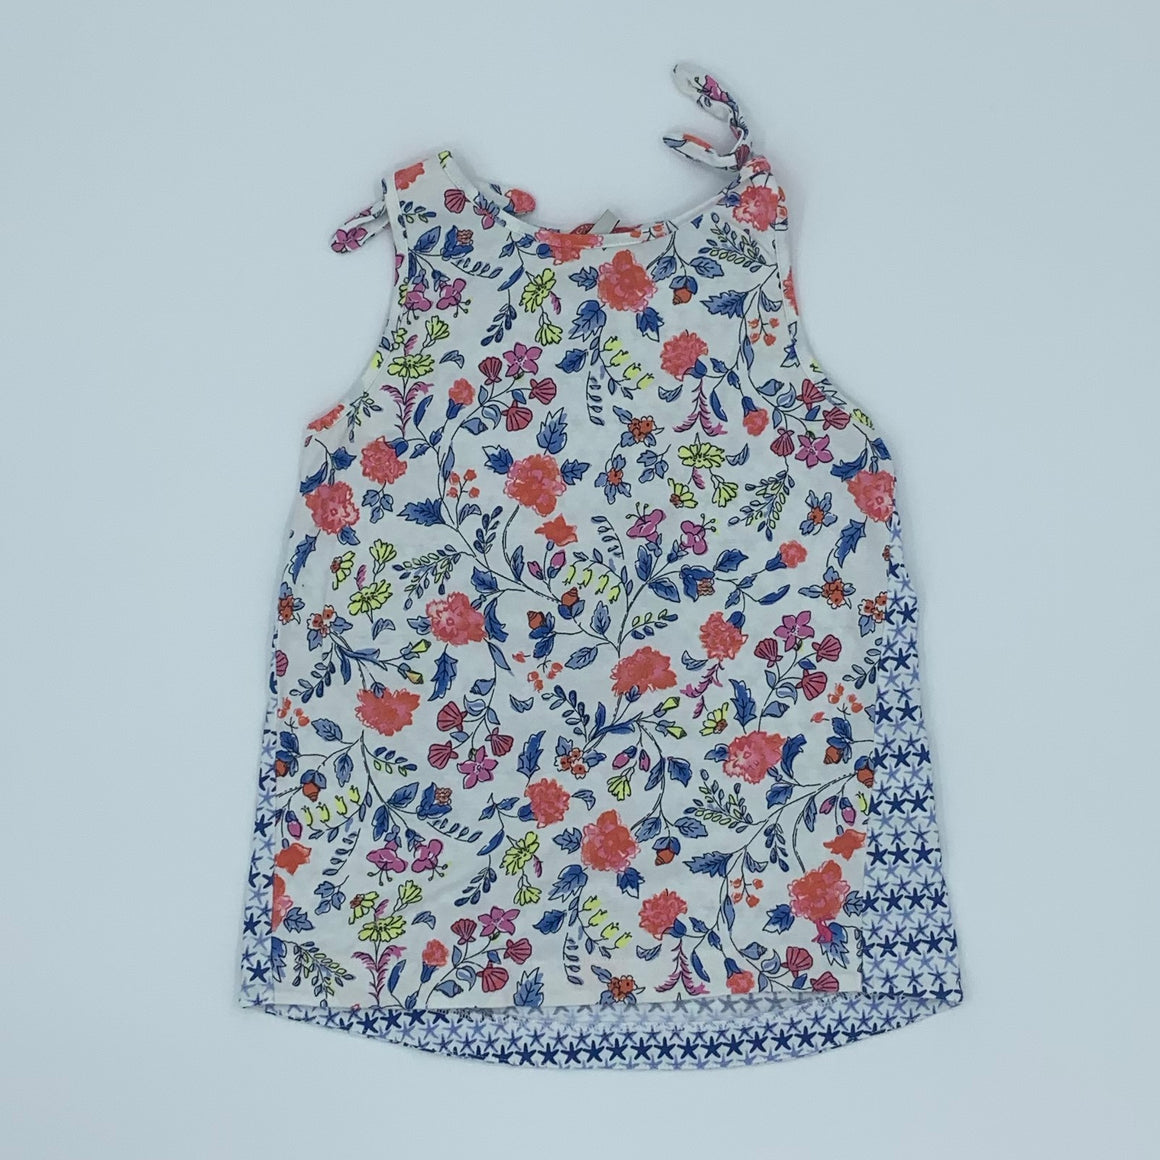 Gently Worn Joules flower sleeveless top size 9-10 years